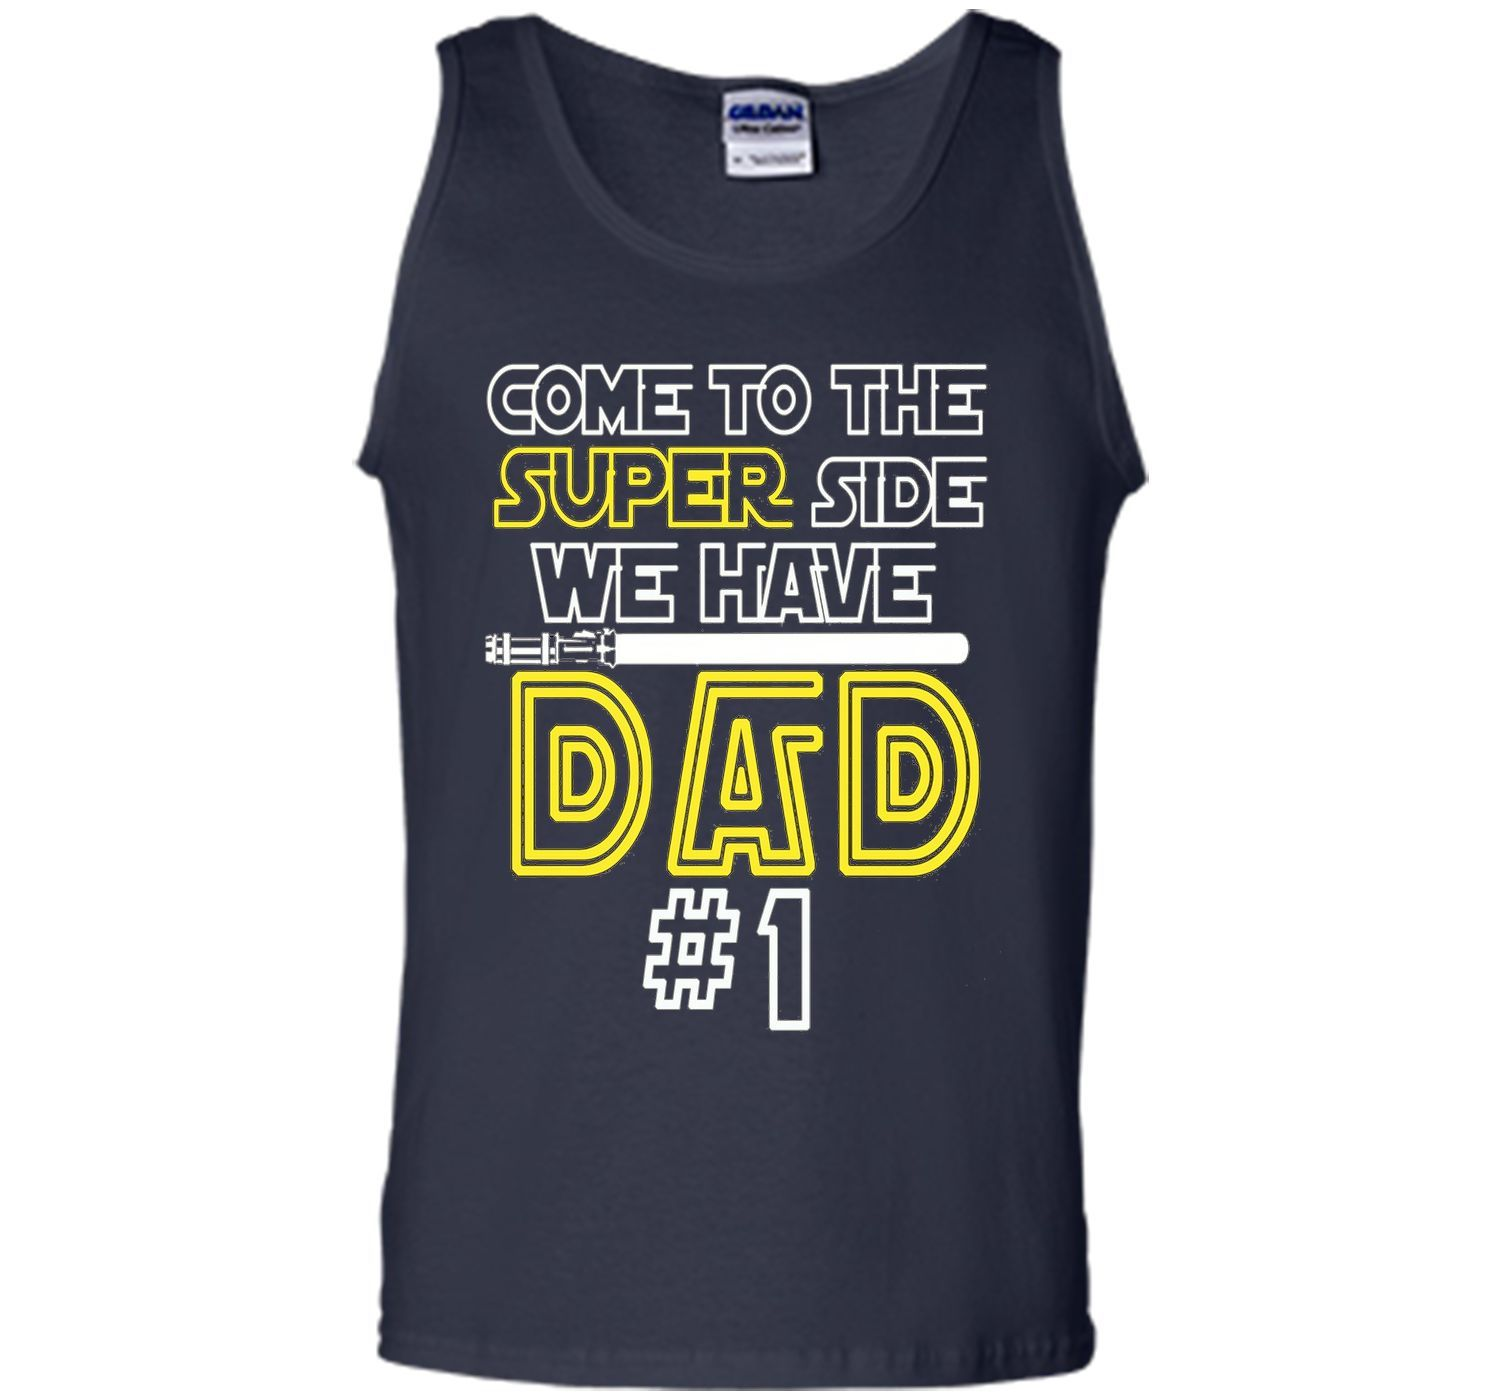 Father's Day Gift Come to the Super side We Have DAD t-shirt